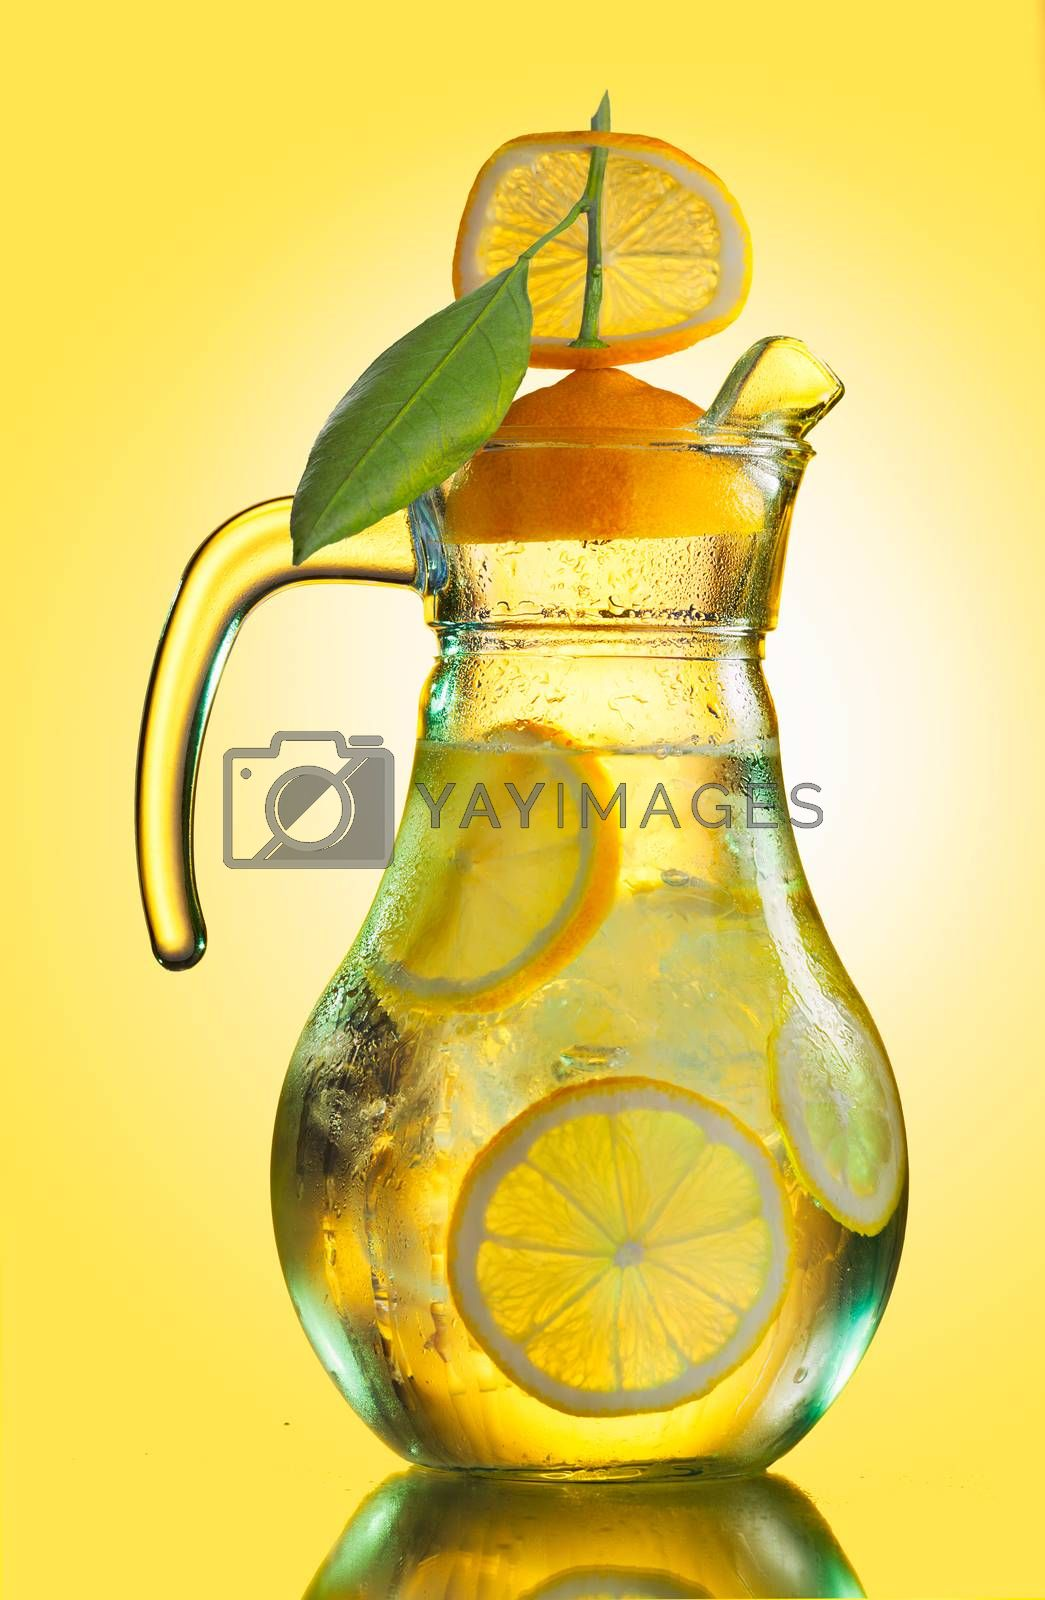 Royalty free image of Lemonade pitcher by maxsol